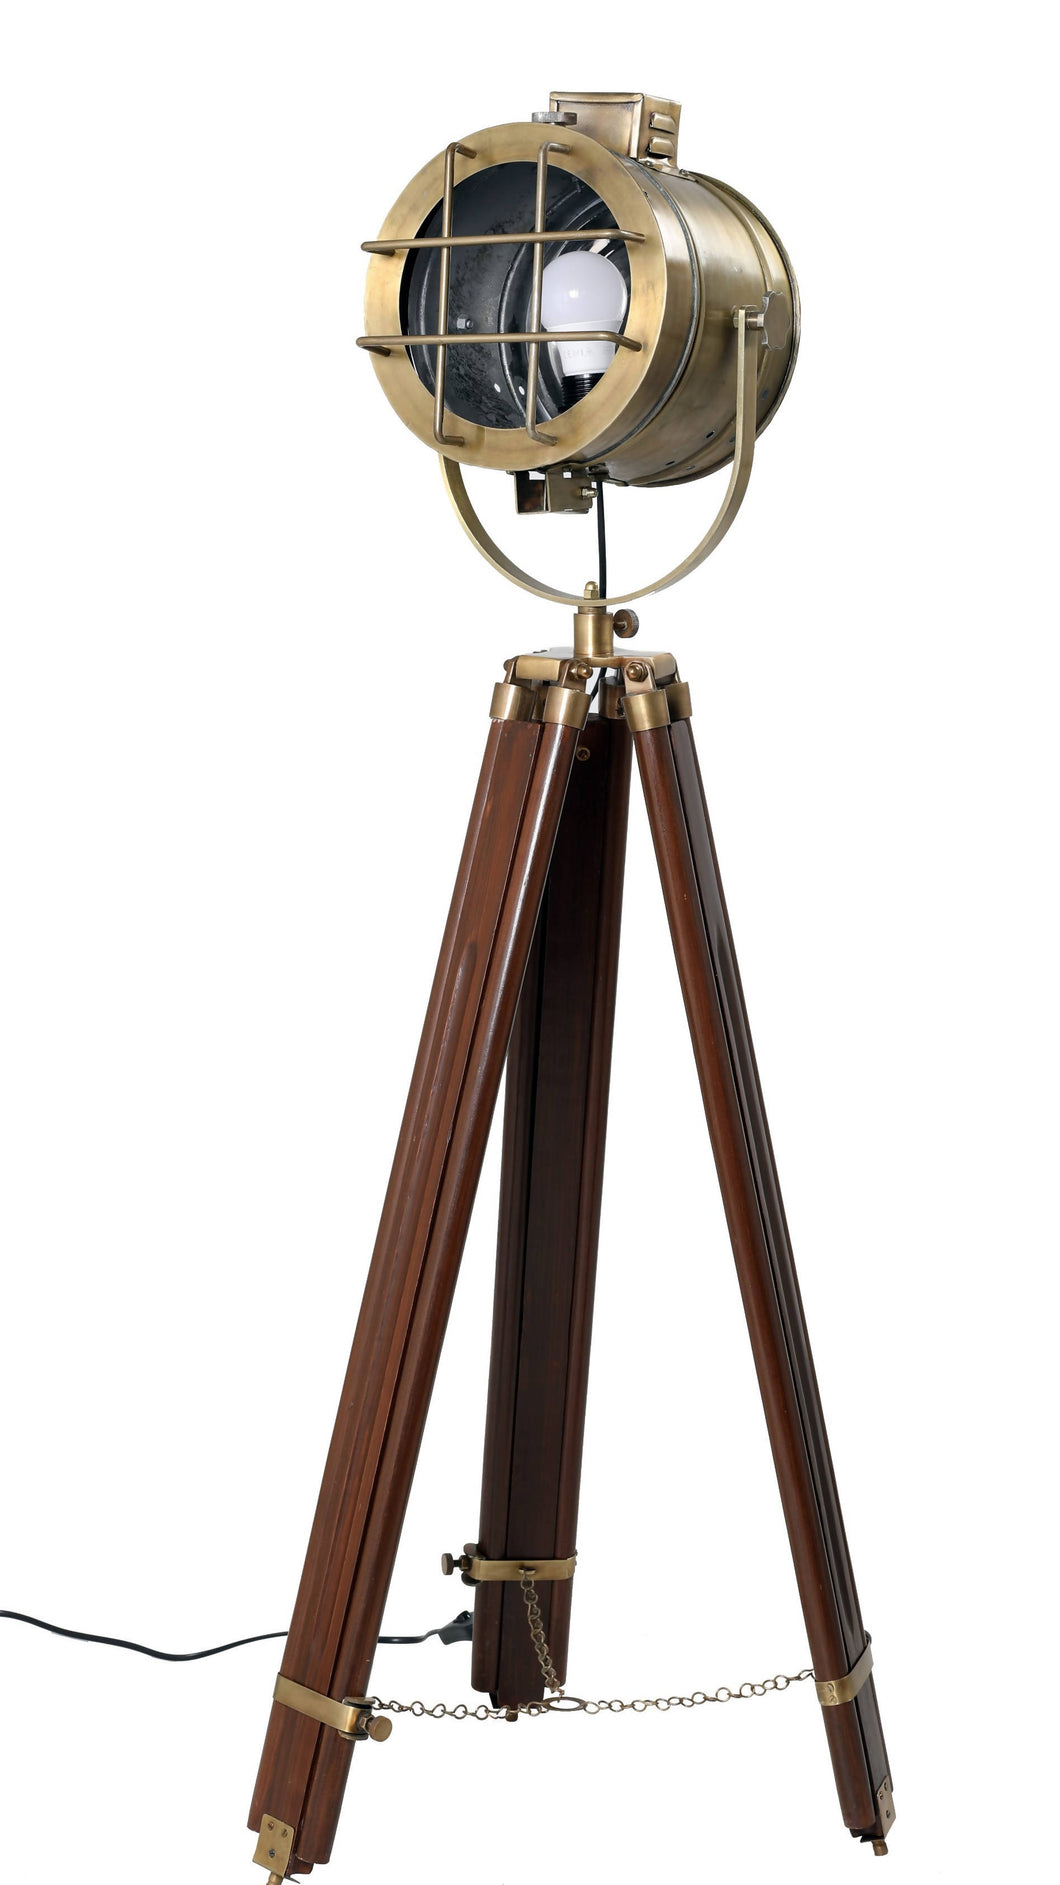 SEEK lamp | Nautical searchlight style floor lamp on tripod, adjustable height